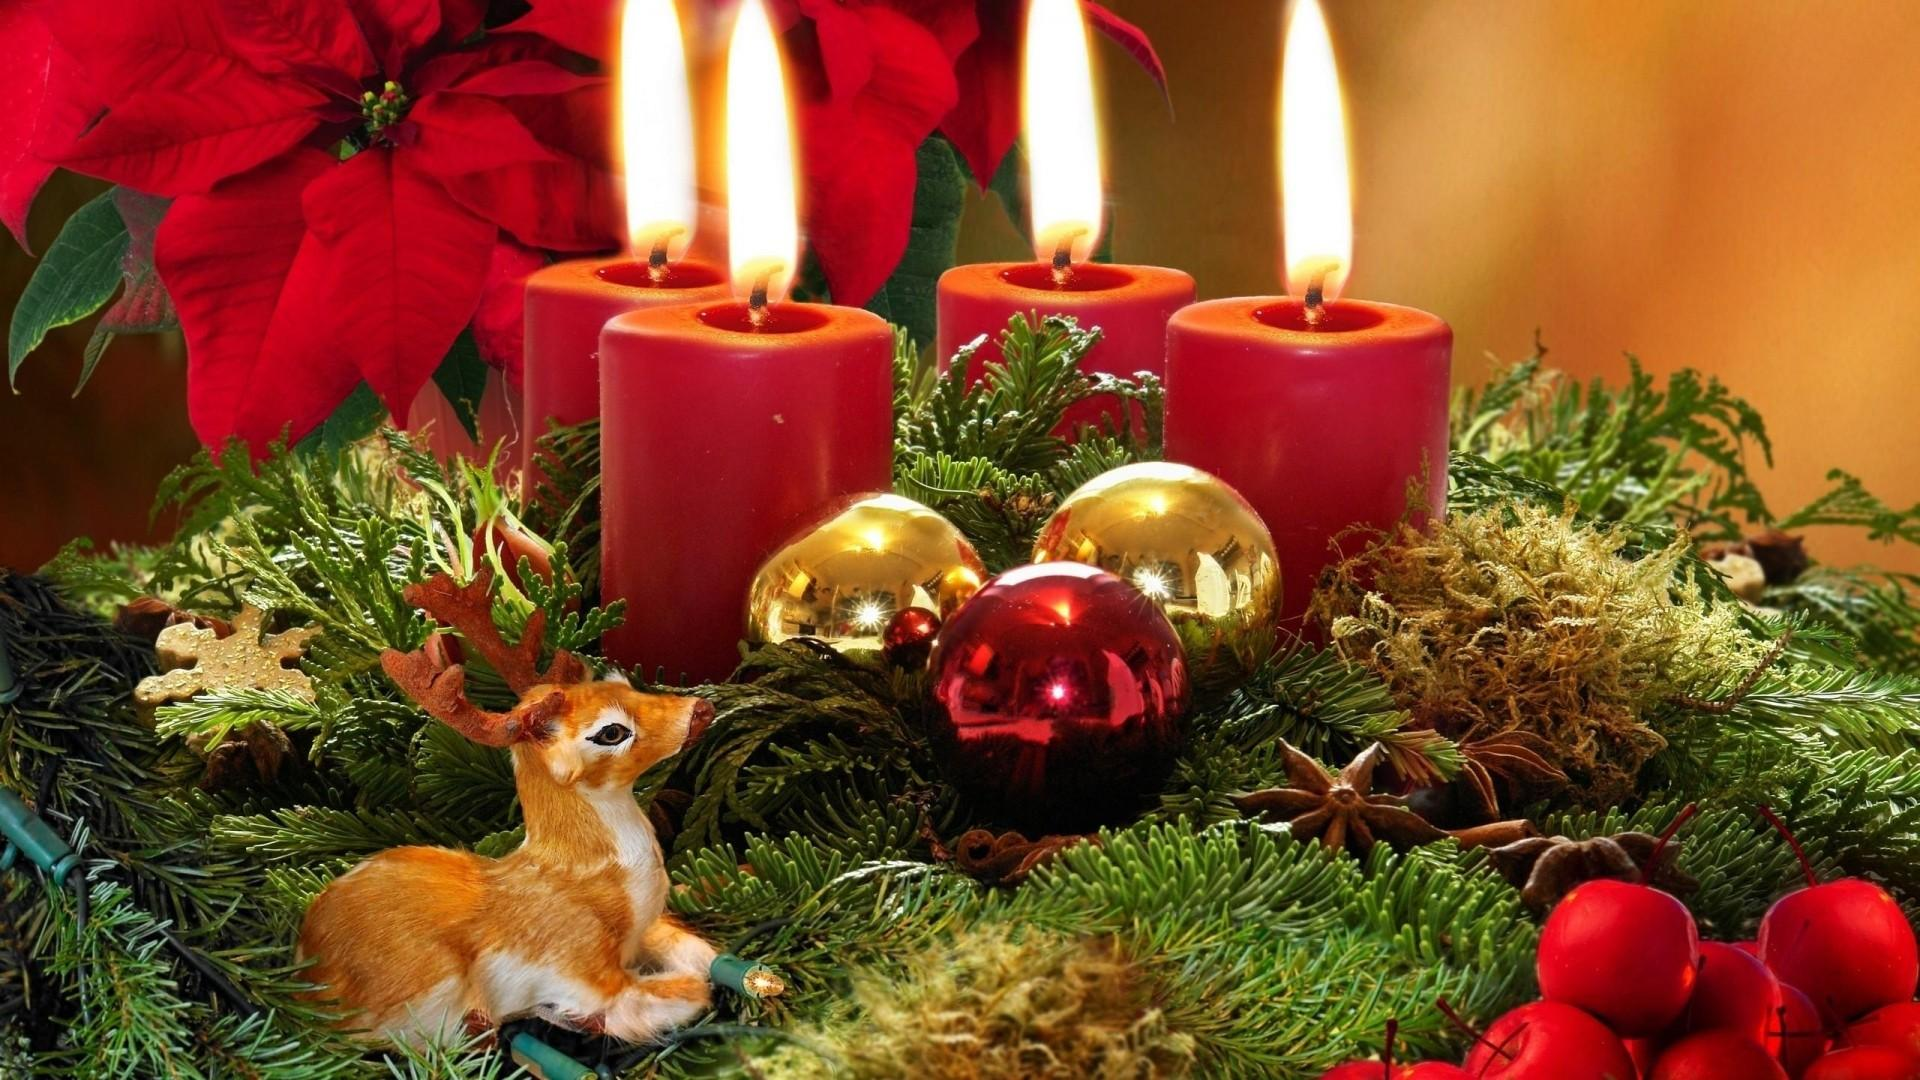 Candles Decorations Christmas 9424